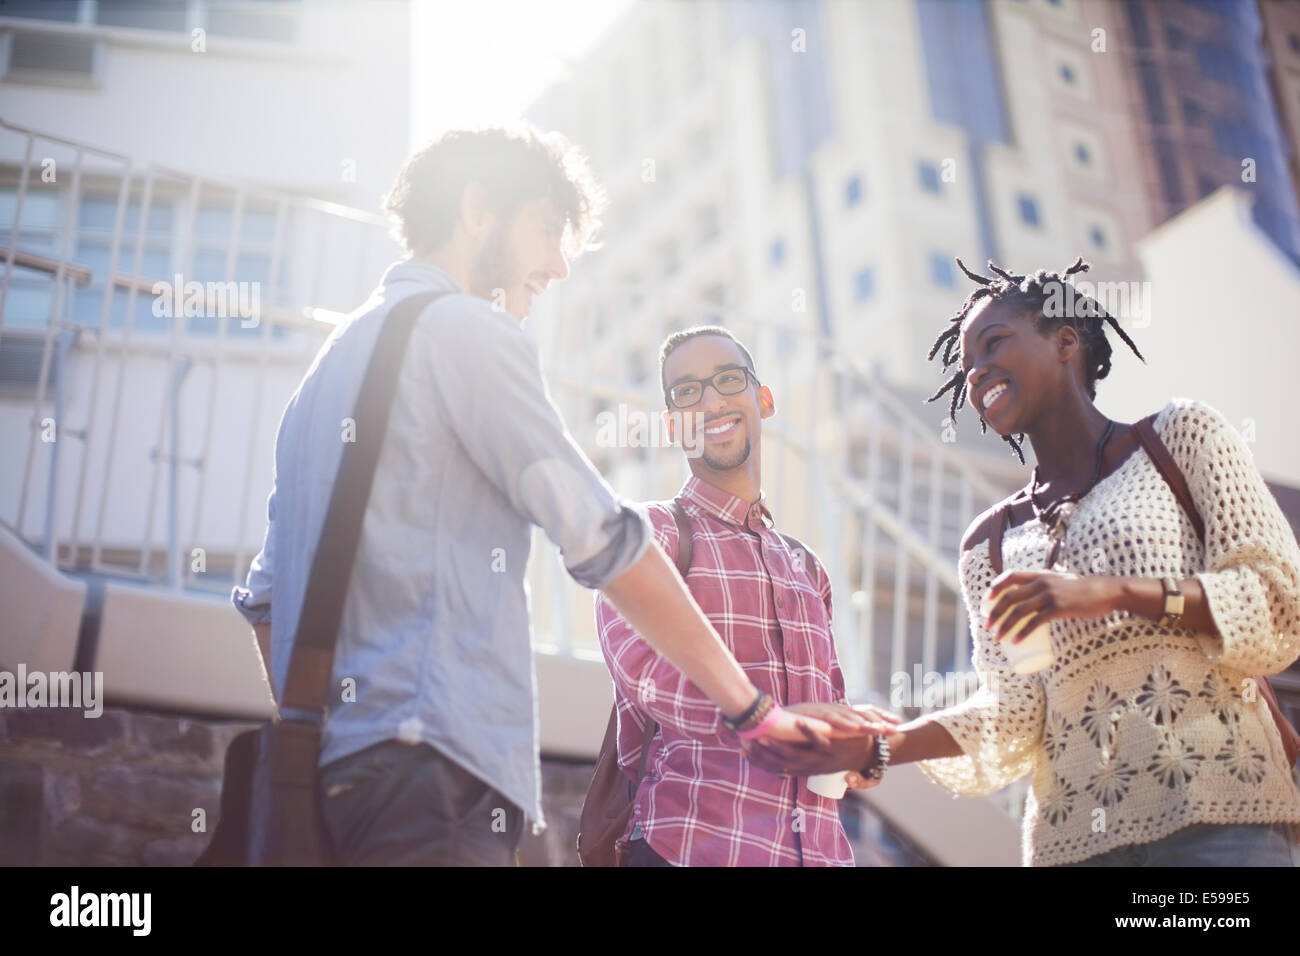 People shaking hands on city street - Stock Image